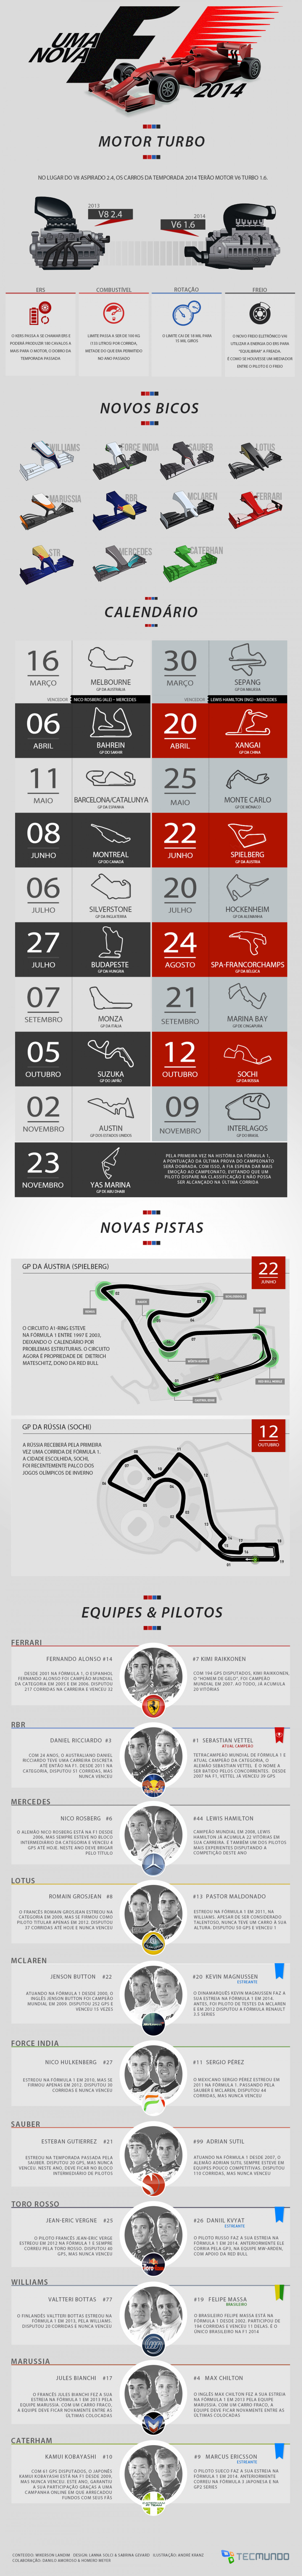 F1 2014 Infographic